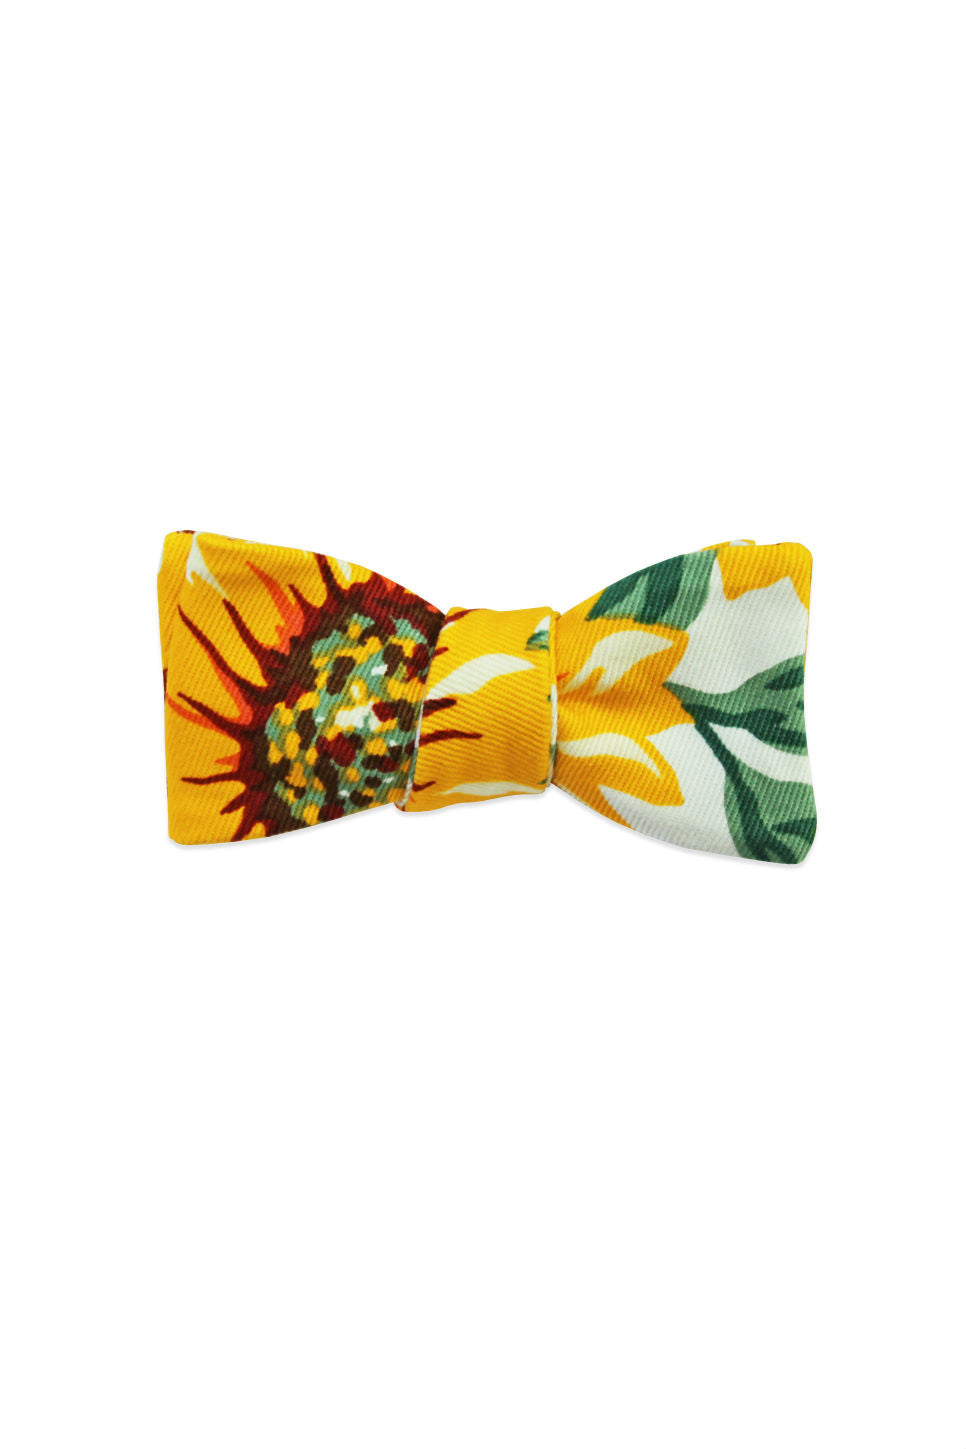 THE LAILA SUNFLOWER BOW TIE Floral Print